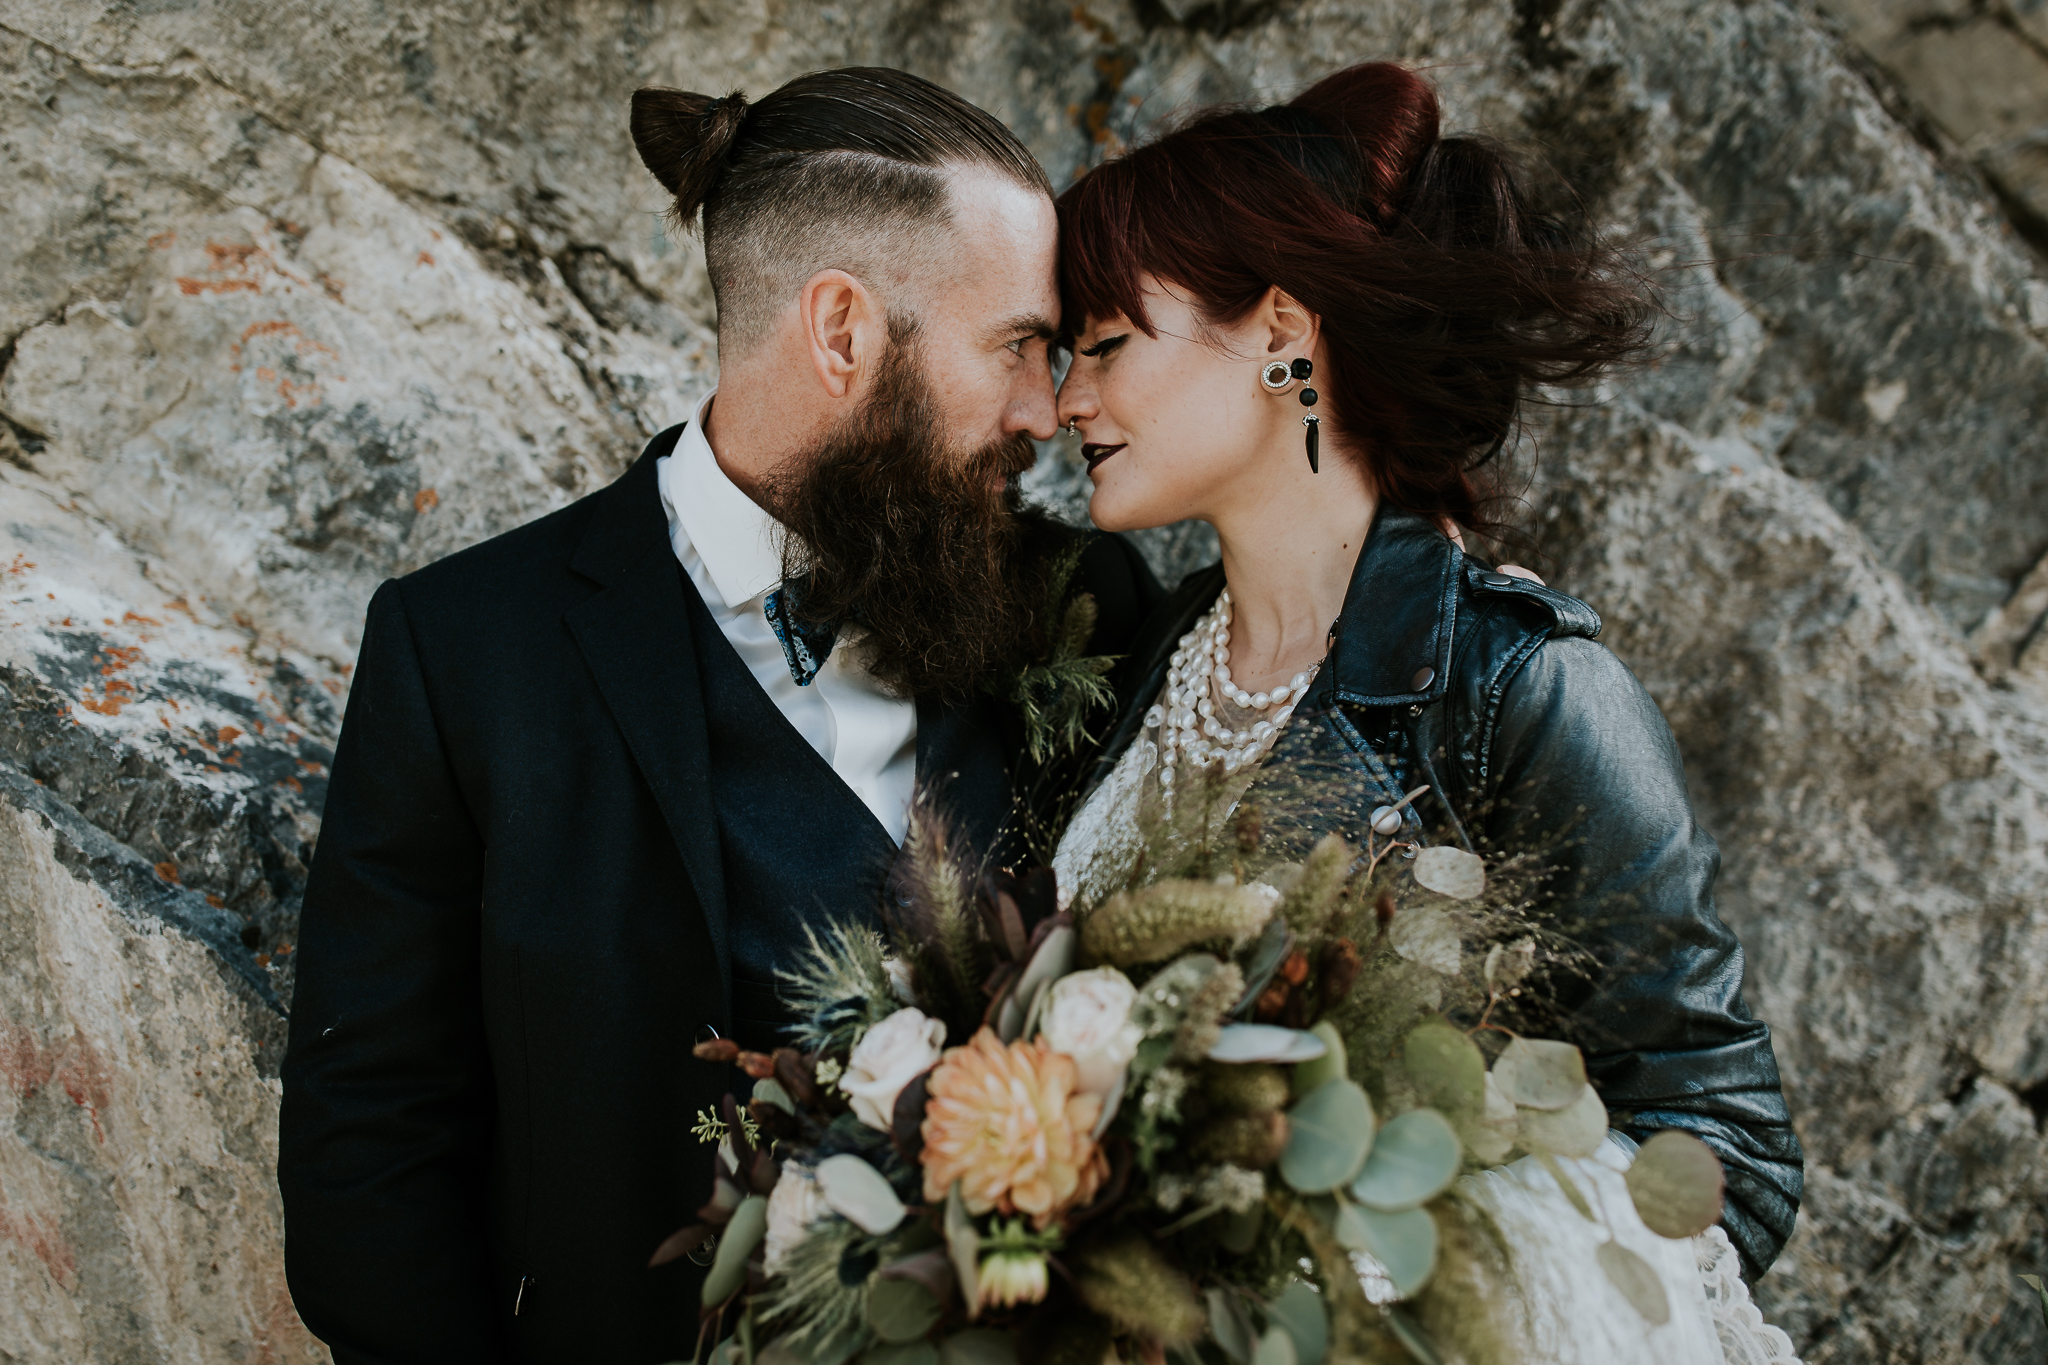 Tattooed Bride and groom looking at each other wearing leather jackets in Alberta rocky mountains